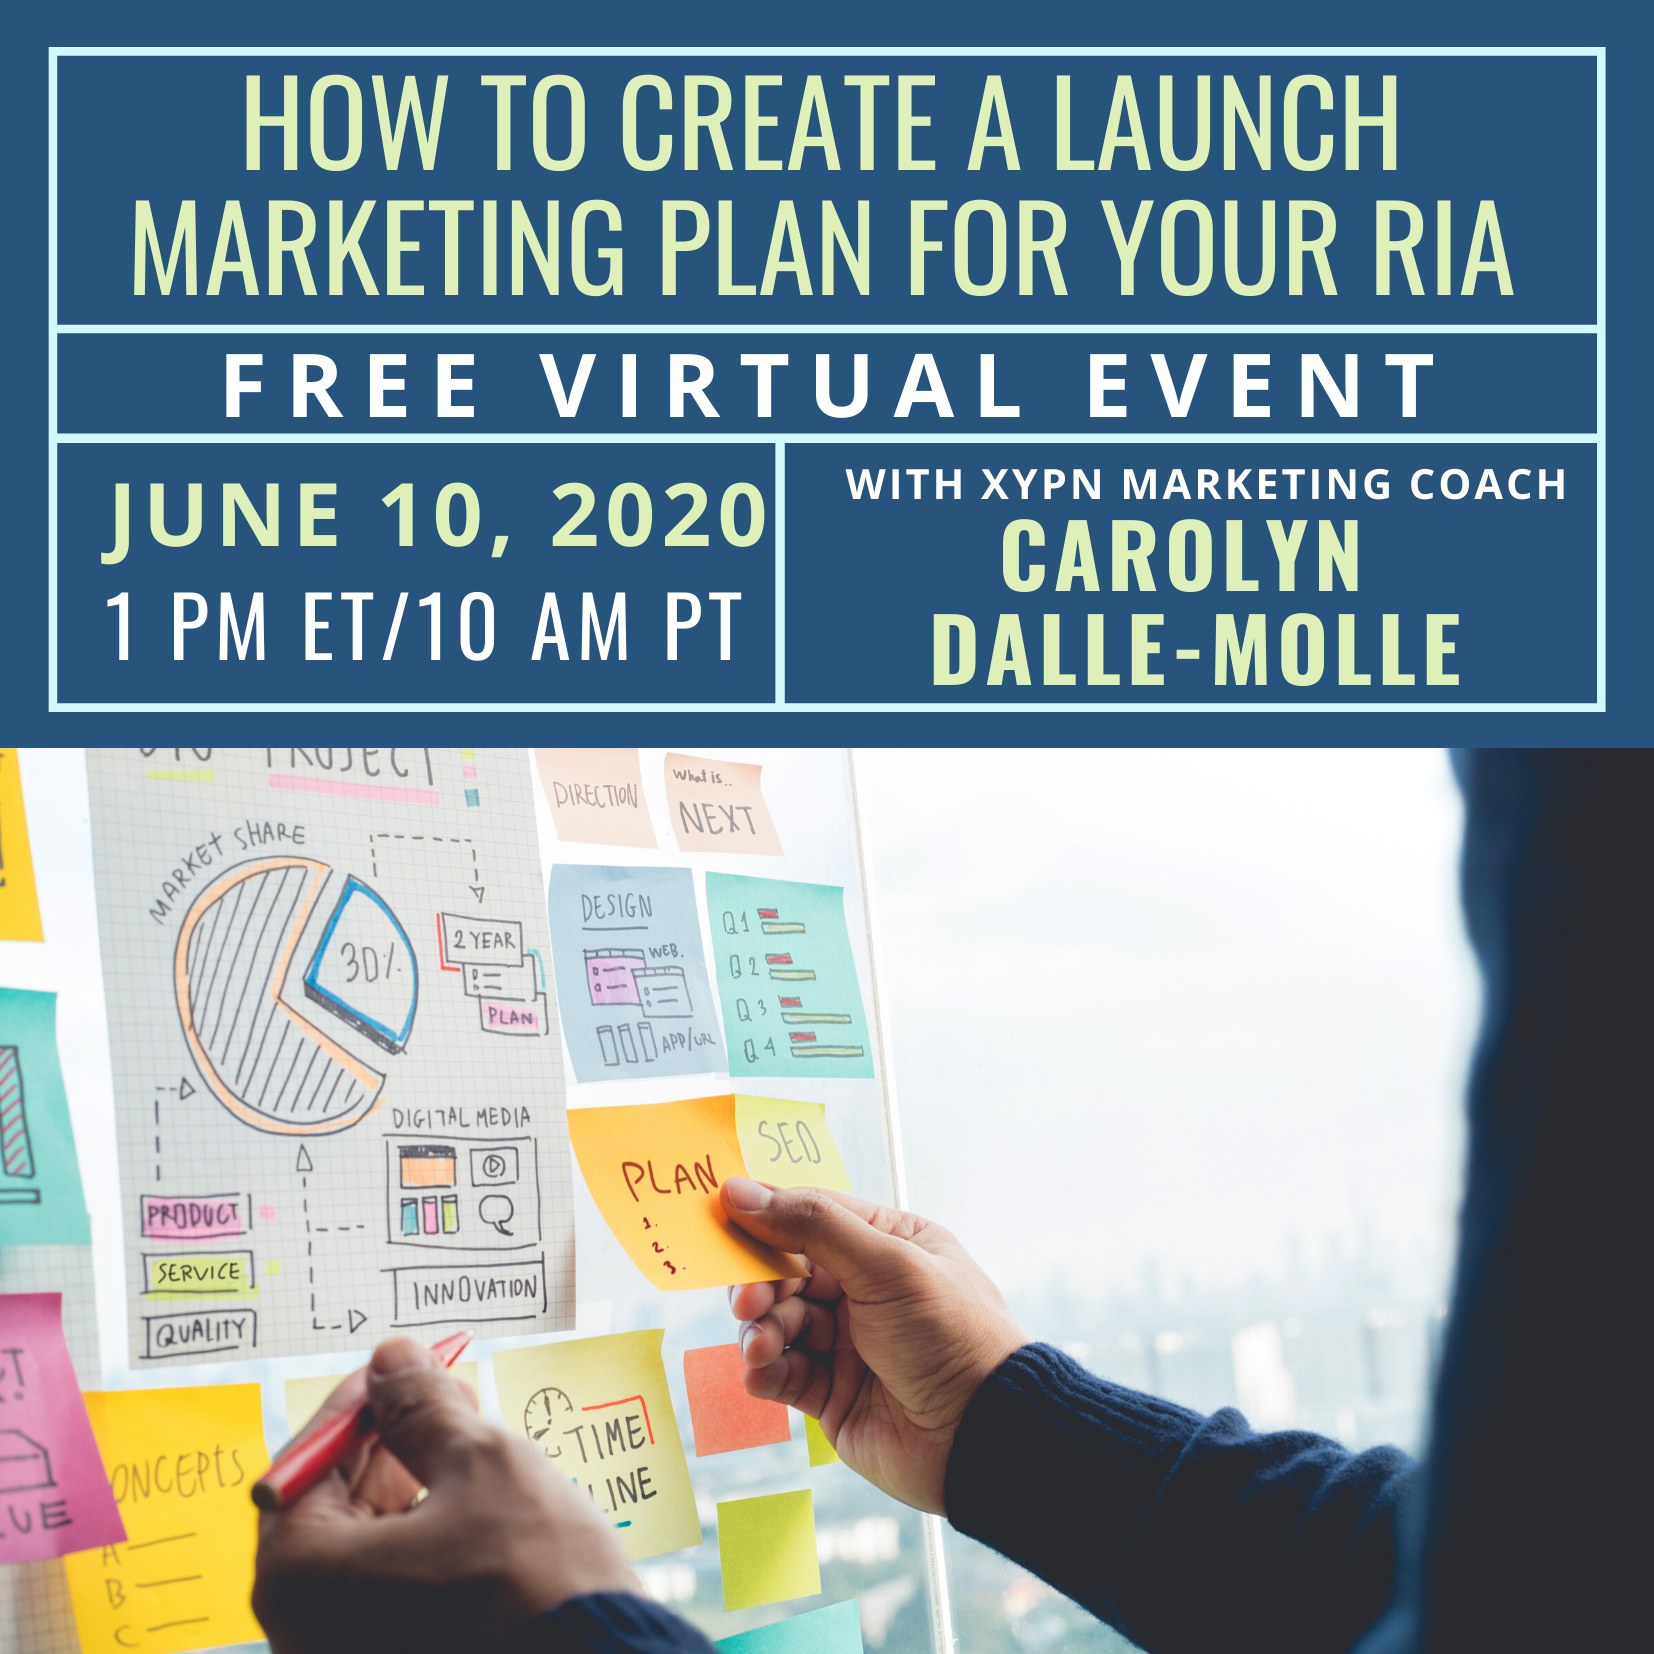 Free Virtual Event: How to Create a Launch Marketing Plan for Your RIA